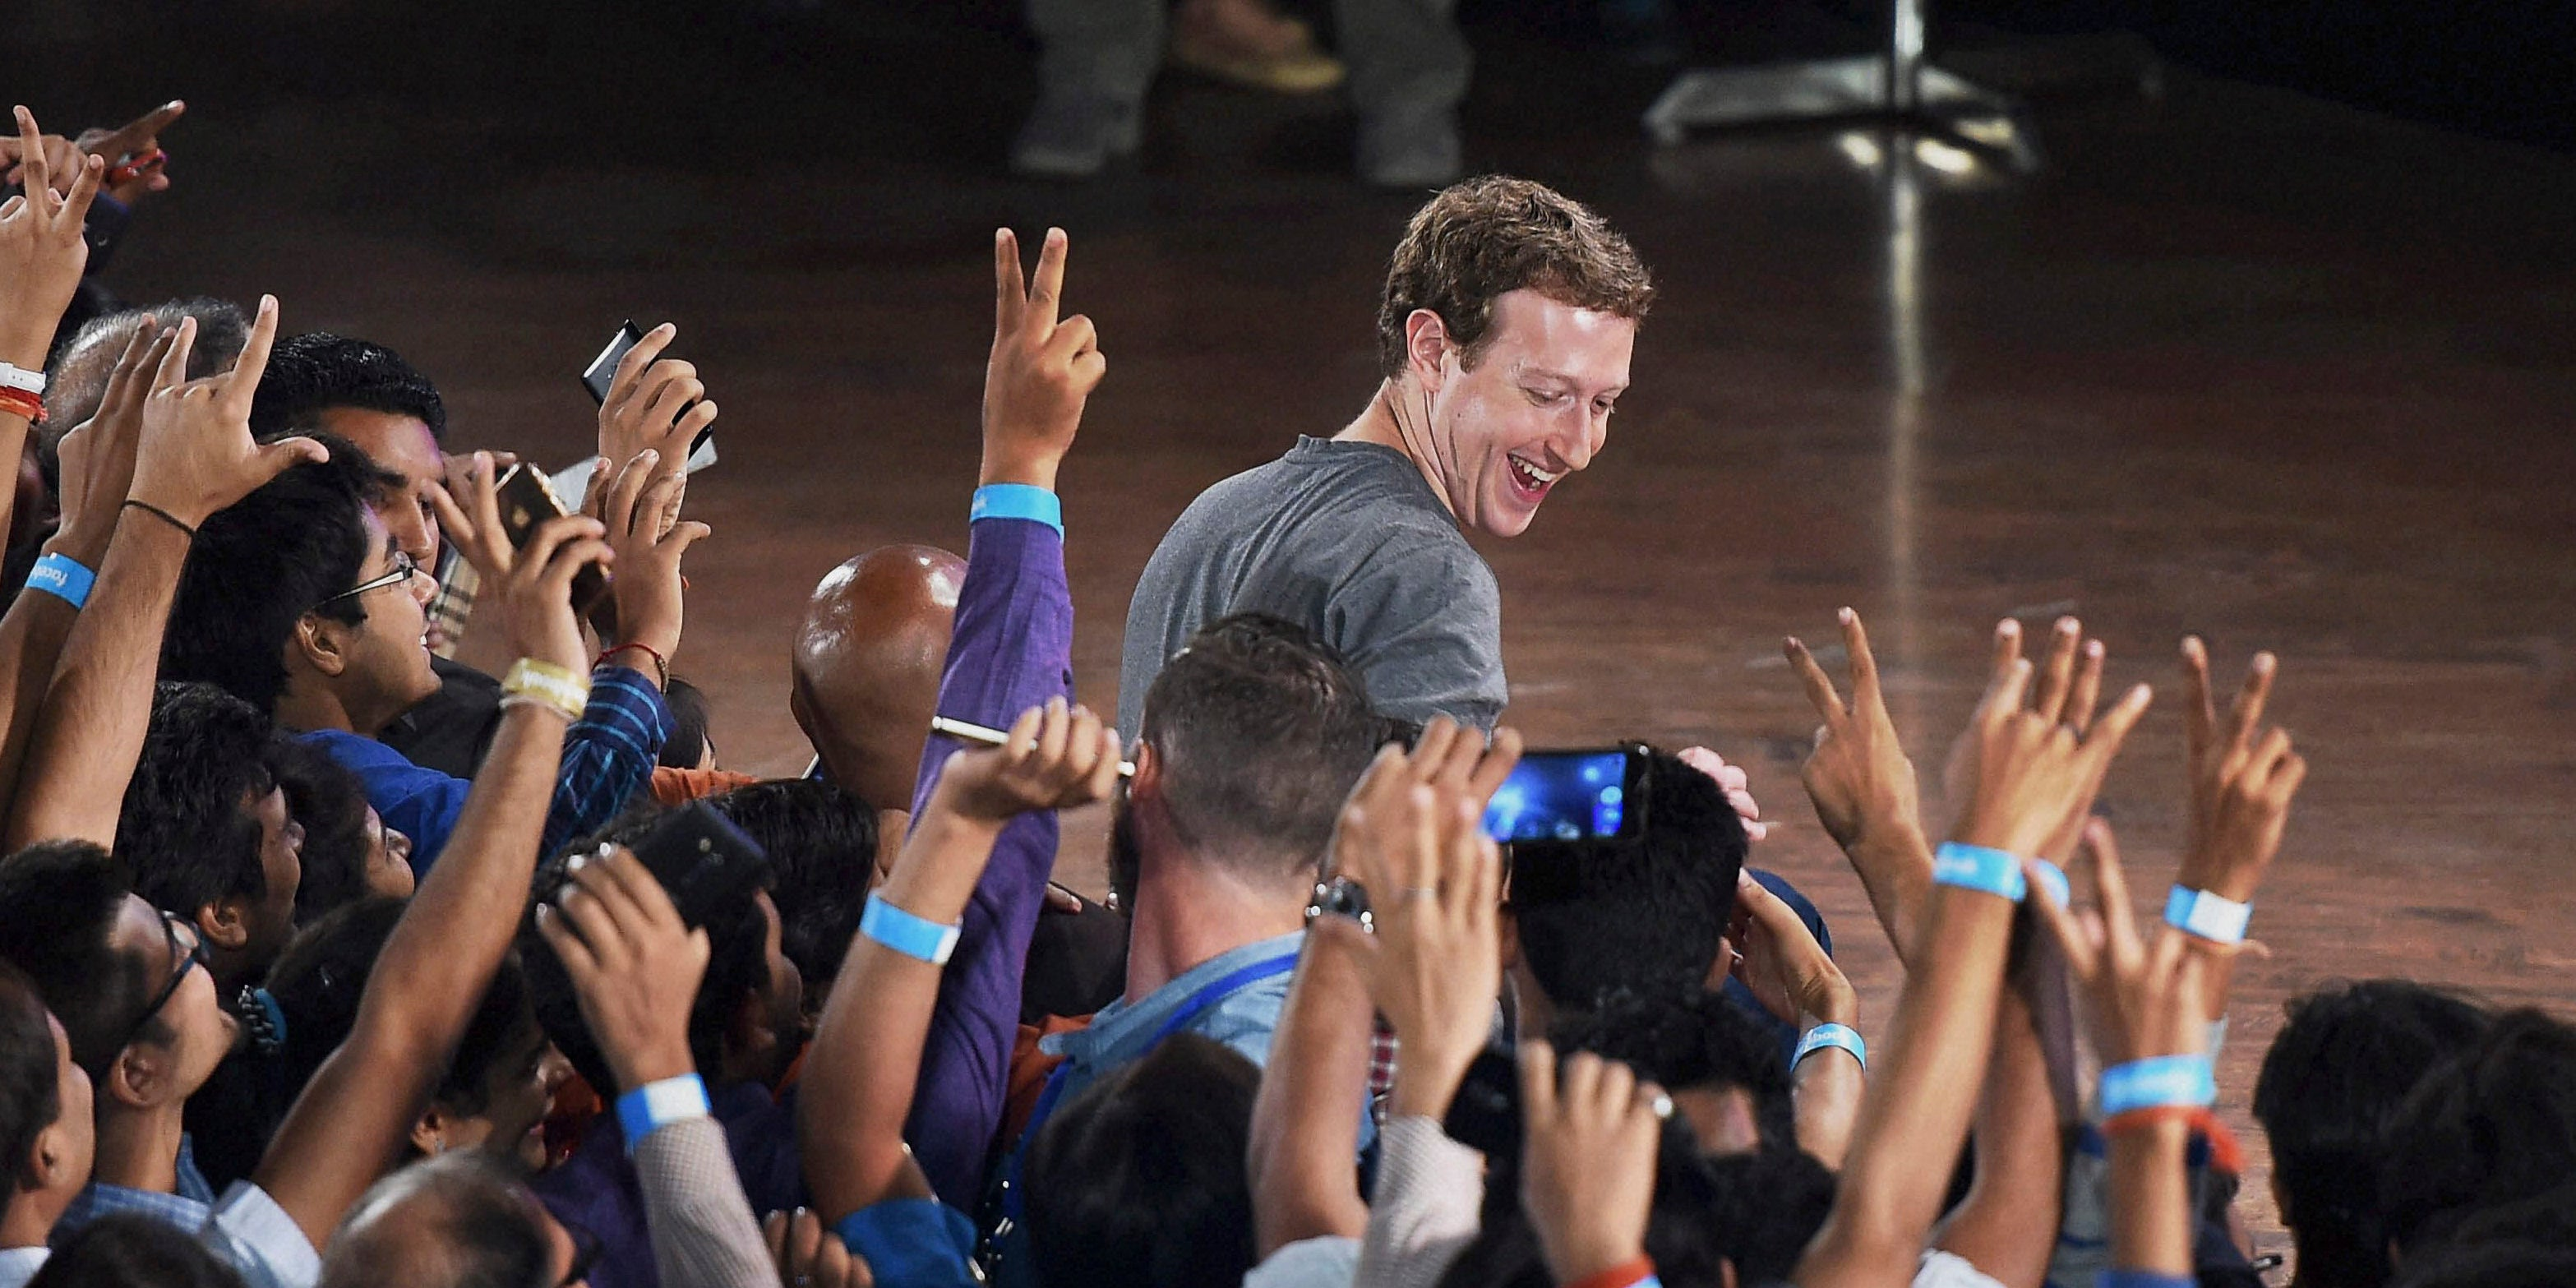 Mark Zuckerberg Warns of Too Much Net Neutrality